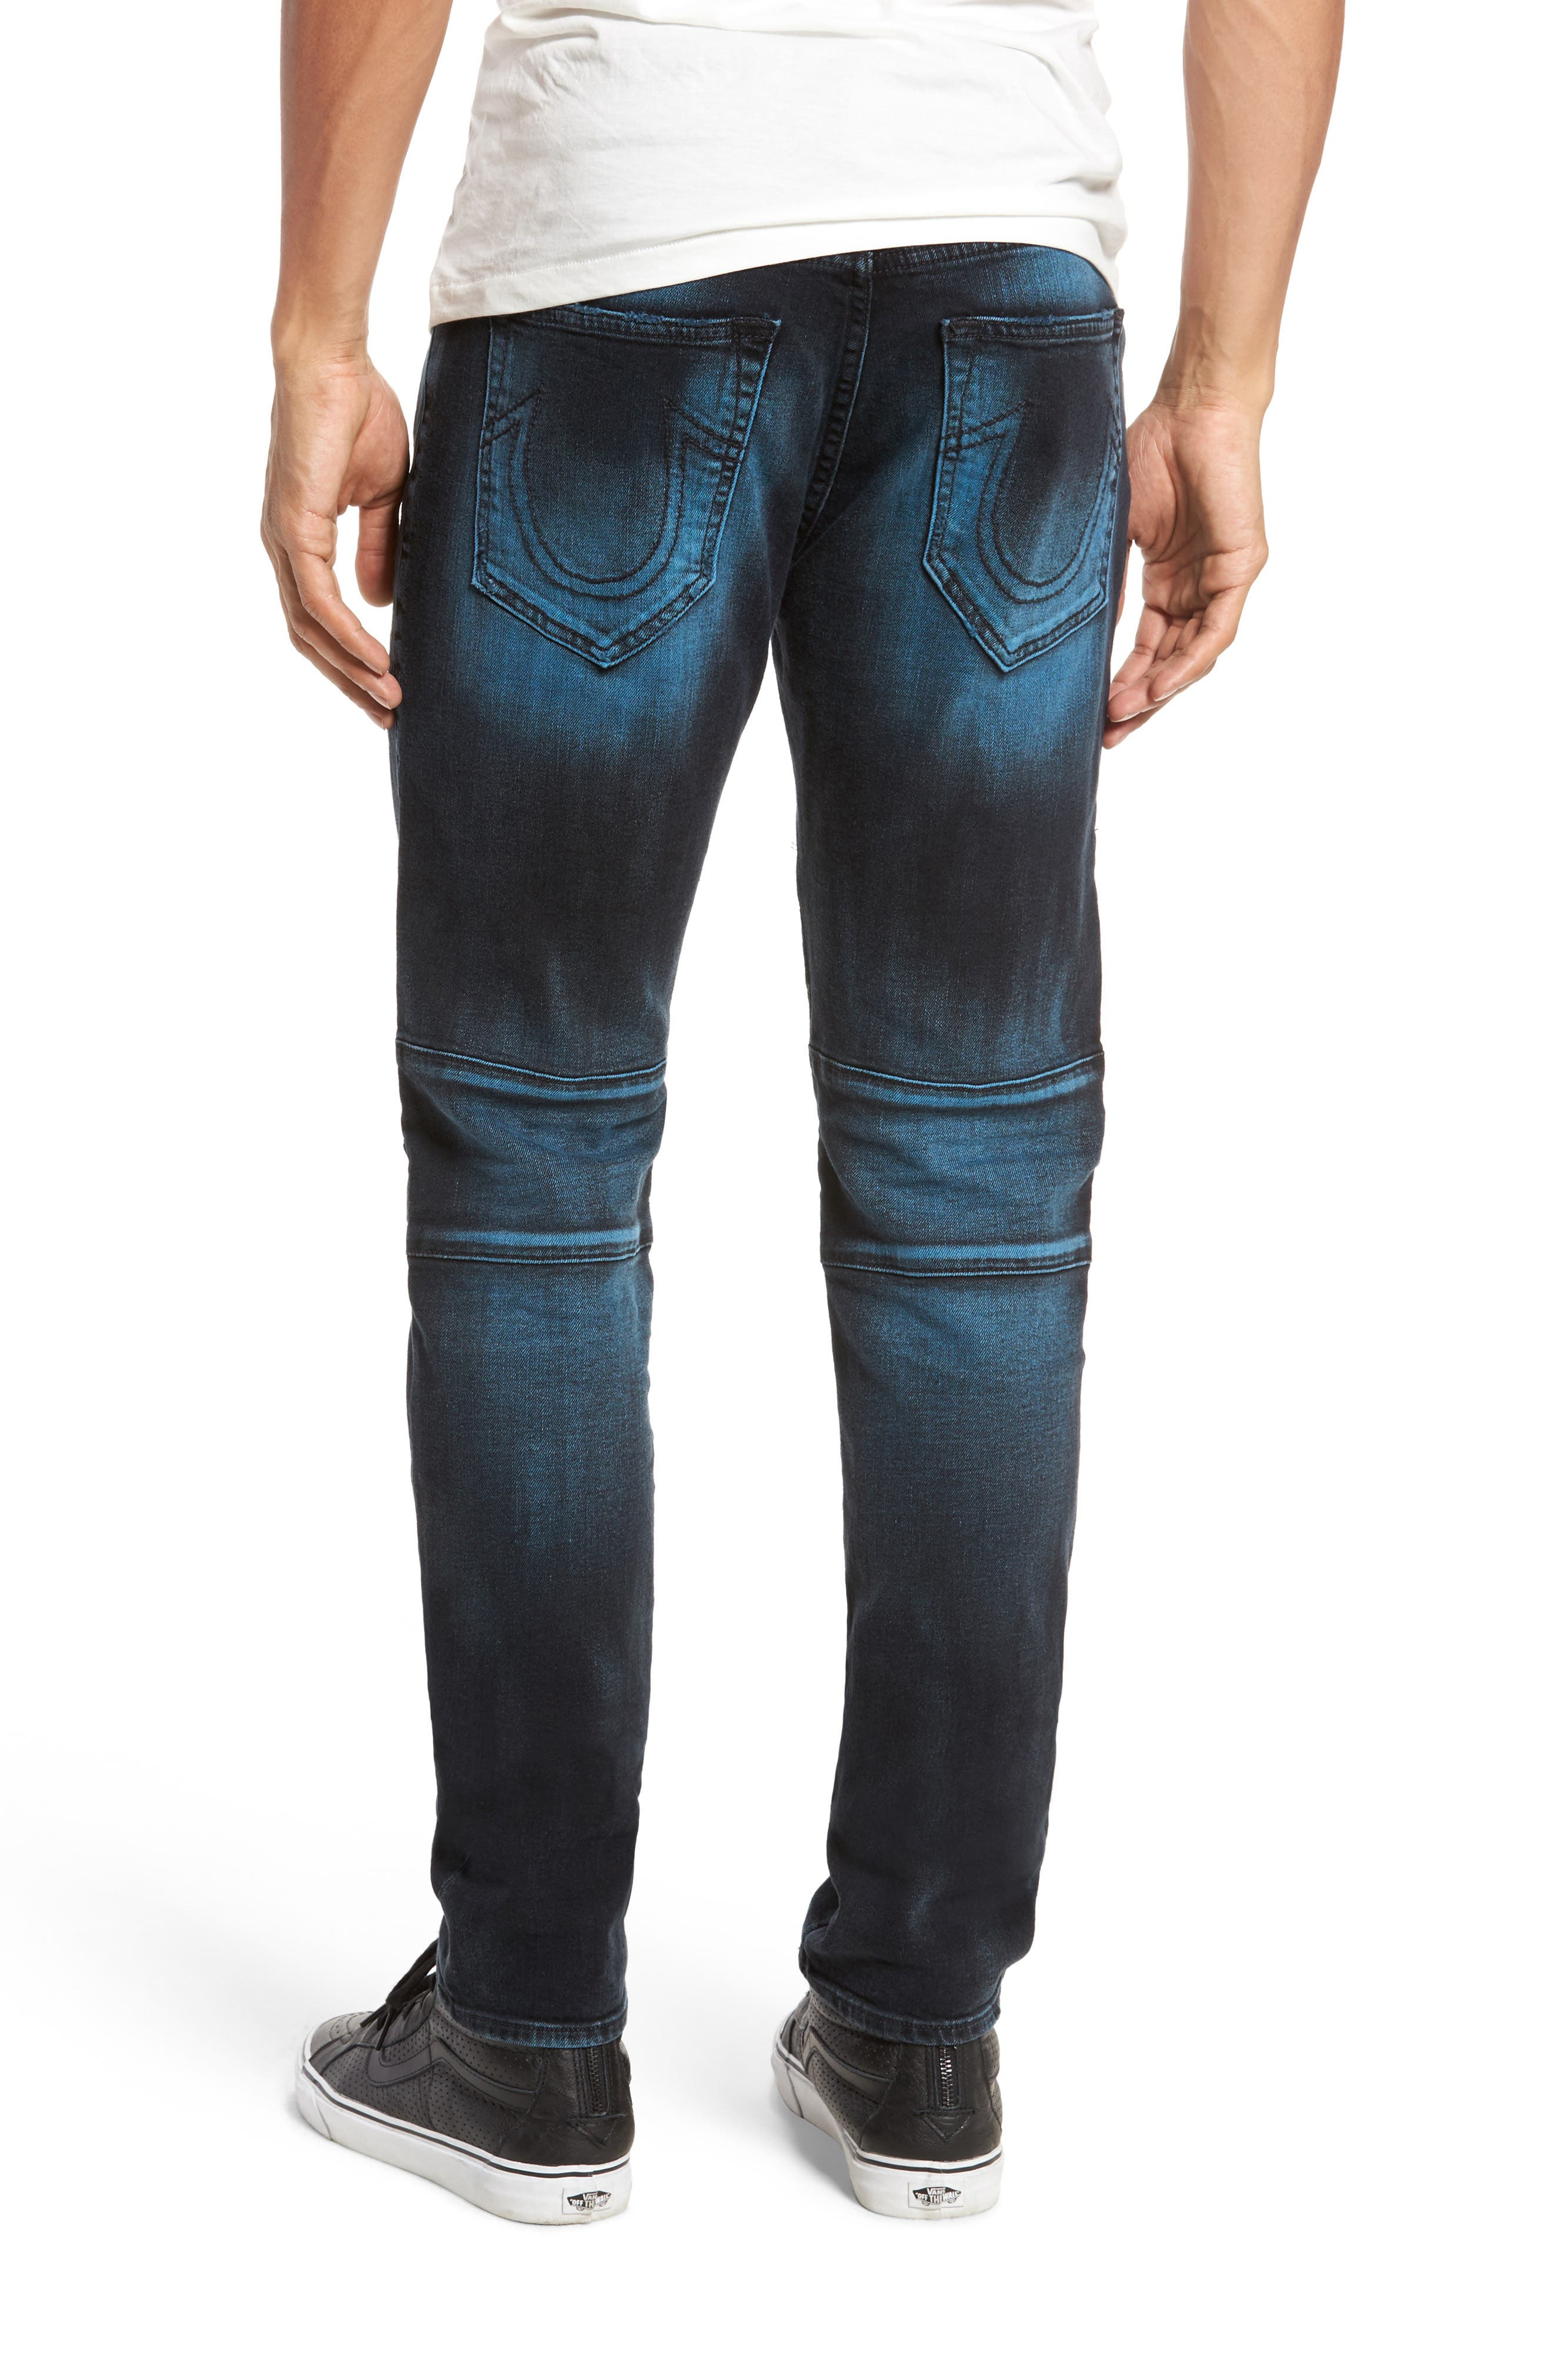 Rocco Skinny Fit Jeans,                             Alternate thumbnail 2, color,                             Blue Blaze